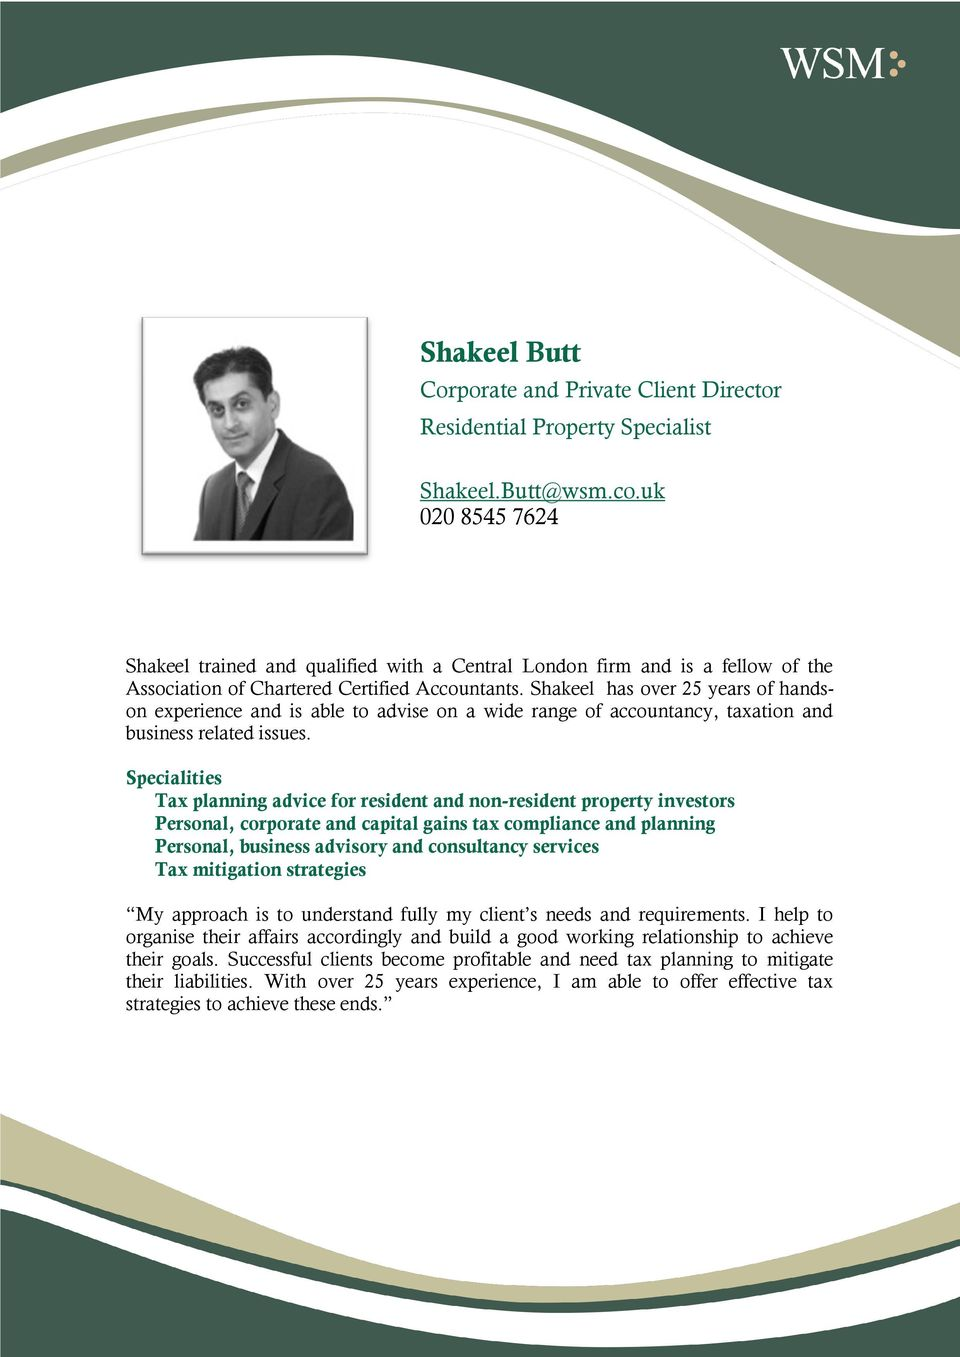 Shakeel has over 25 years of handson experience and is able to advise on a wide range of accountancy, taxation and business related issues.